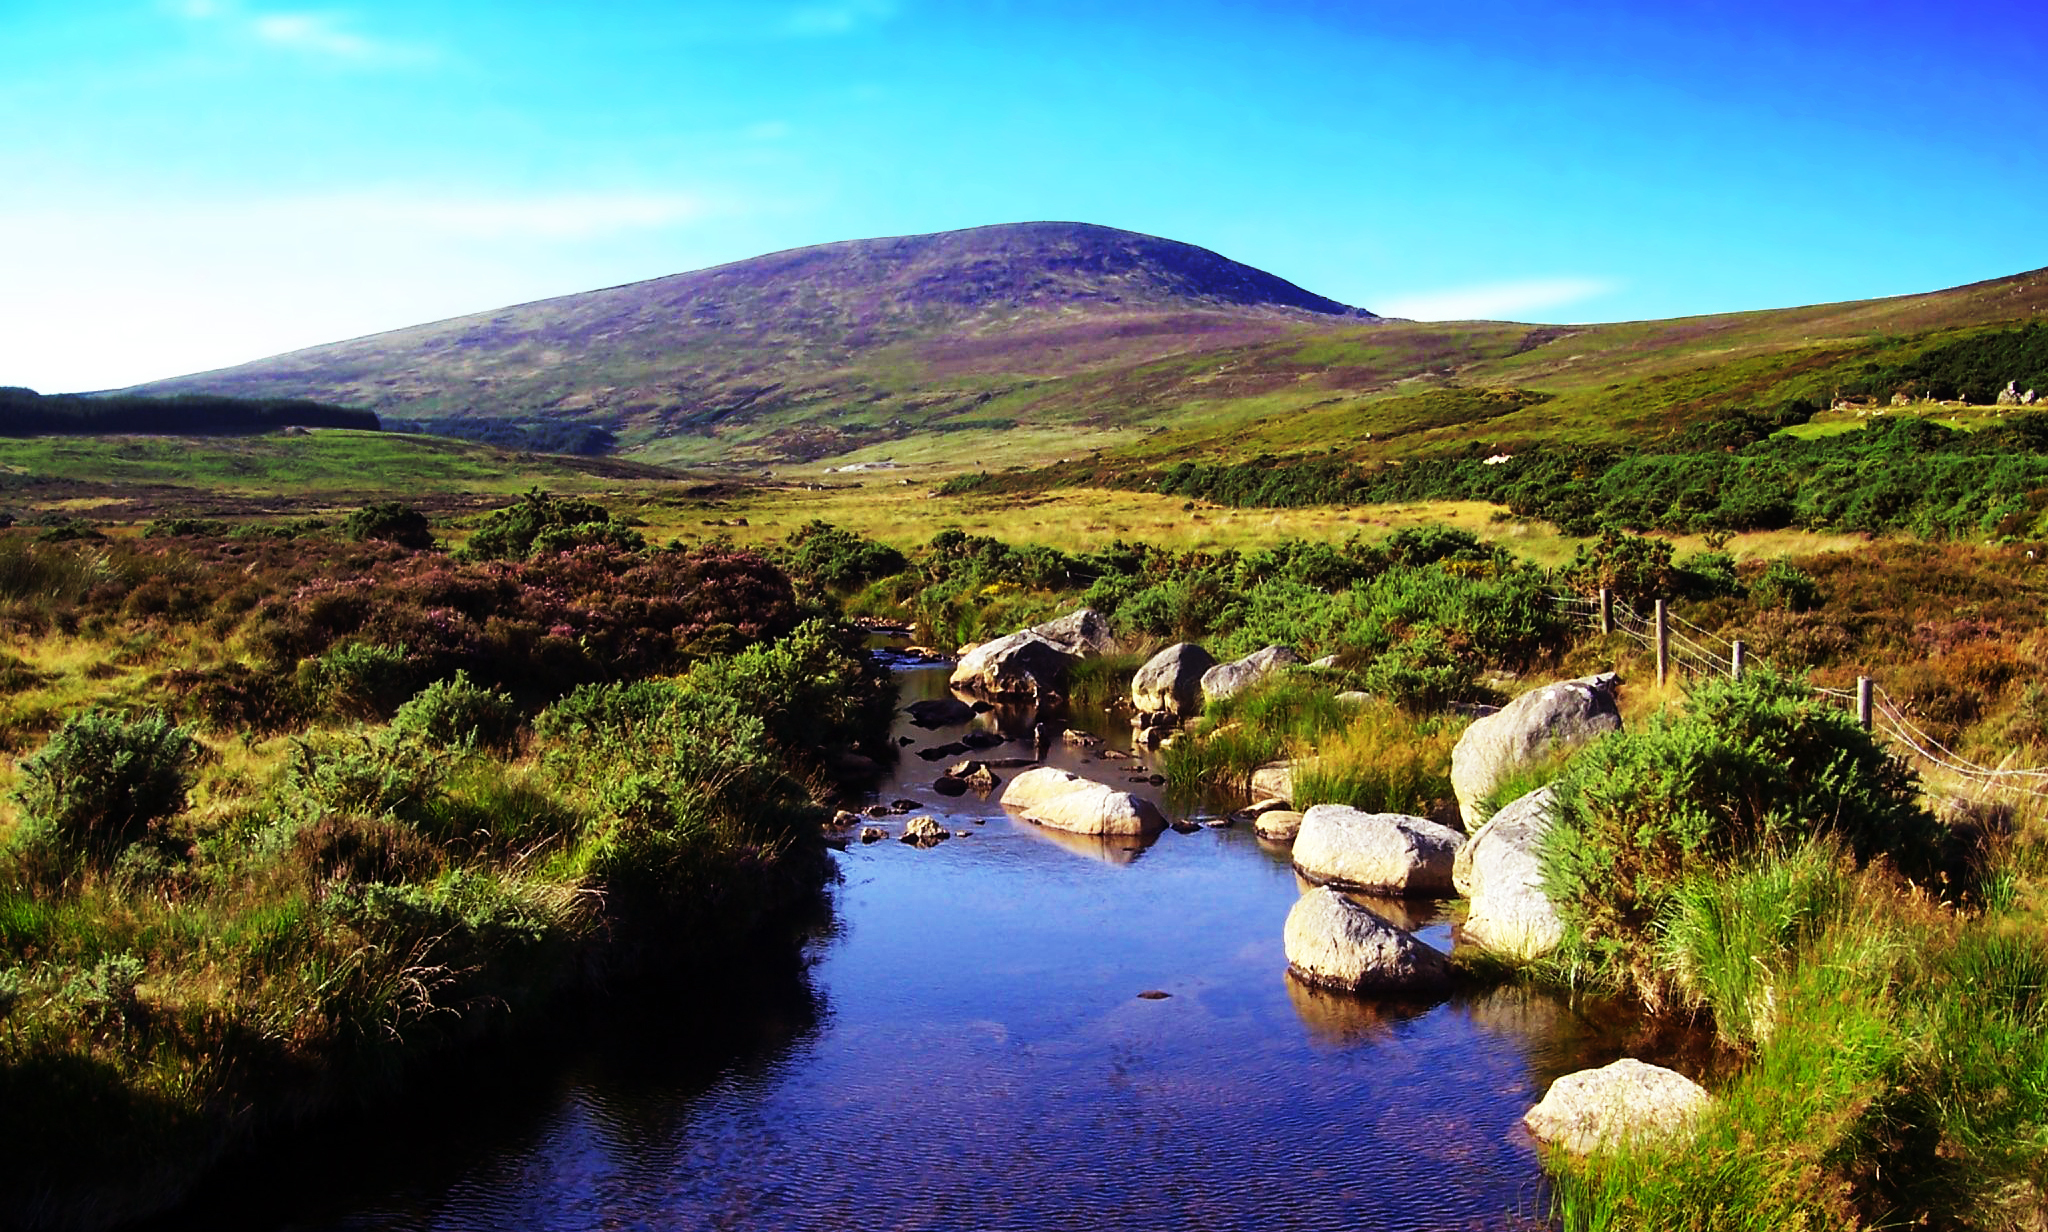 Landscape_in_Wicklow,_Ireland